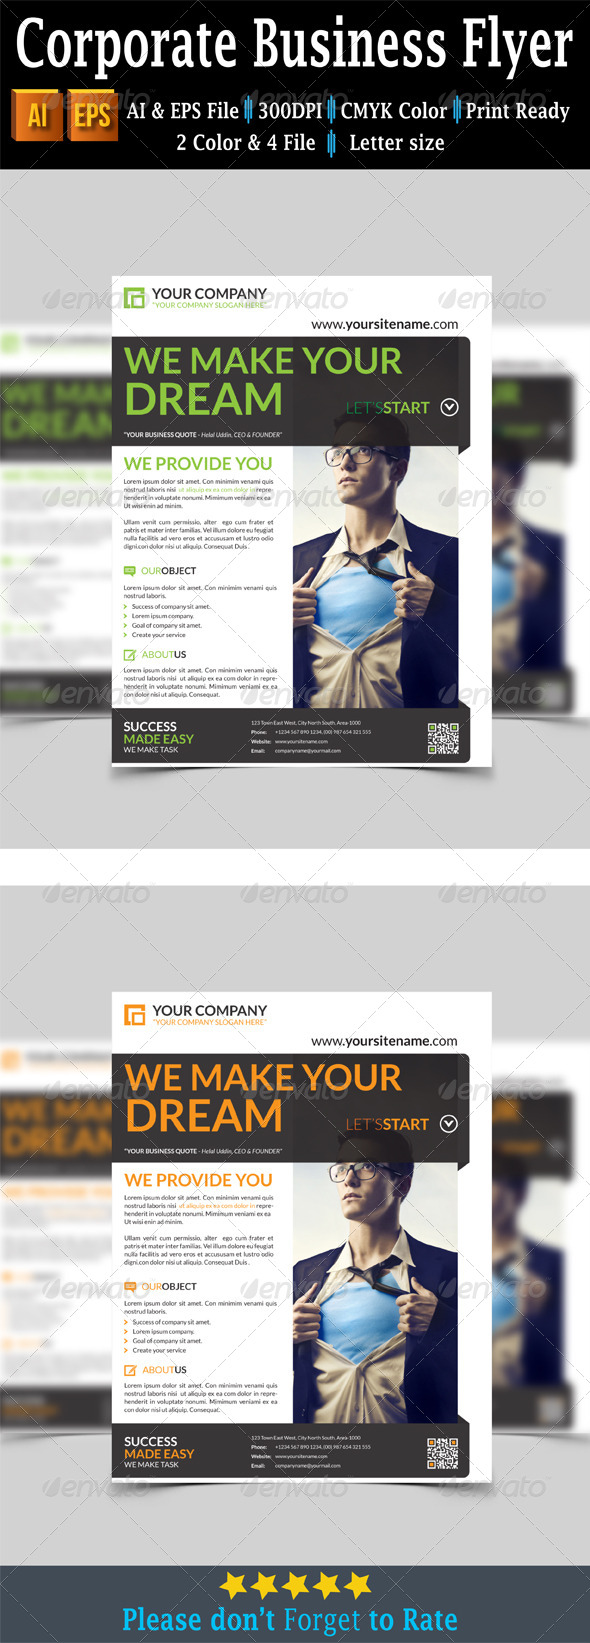 GraphicRiver Corporate Business Flyer 7699978